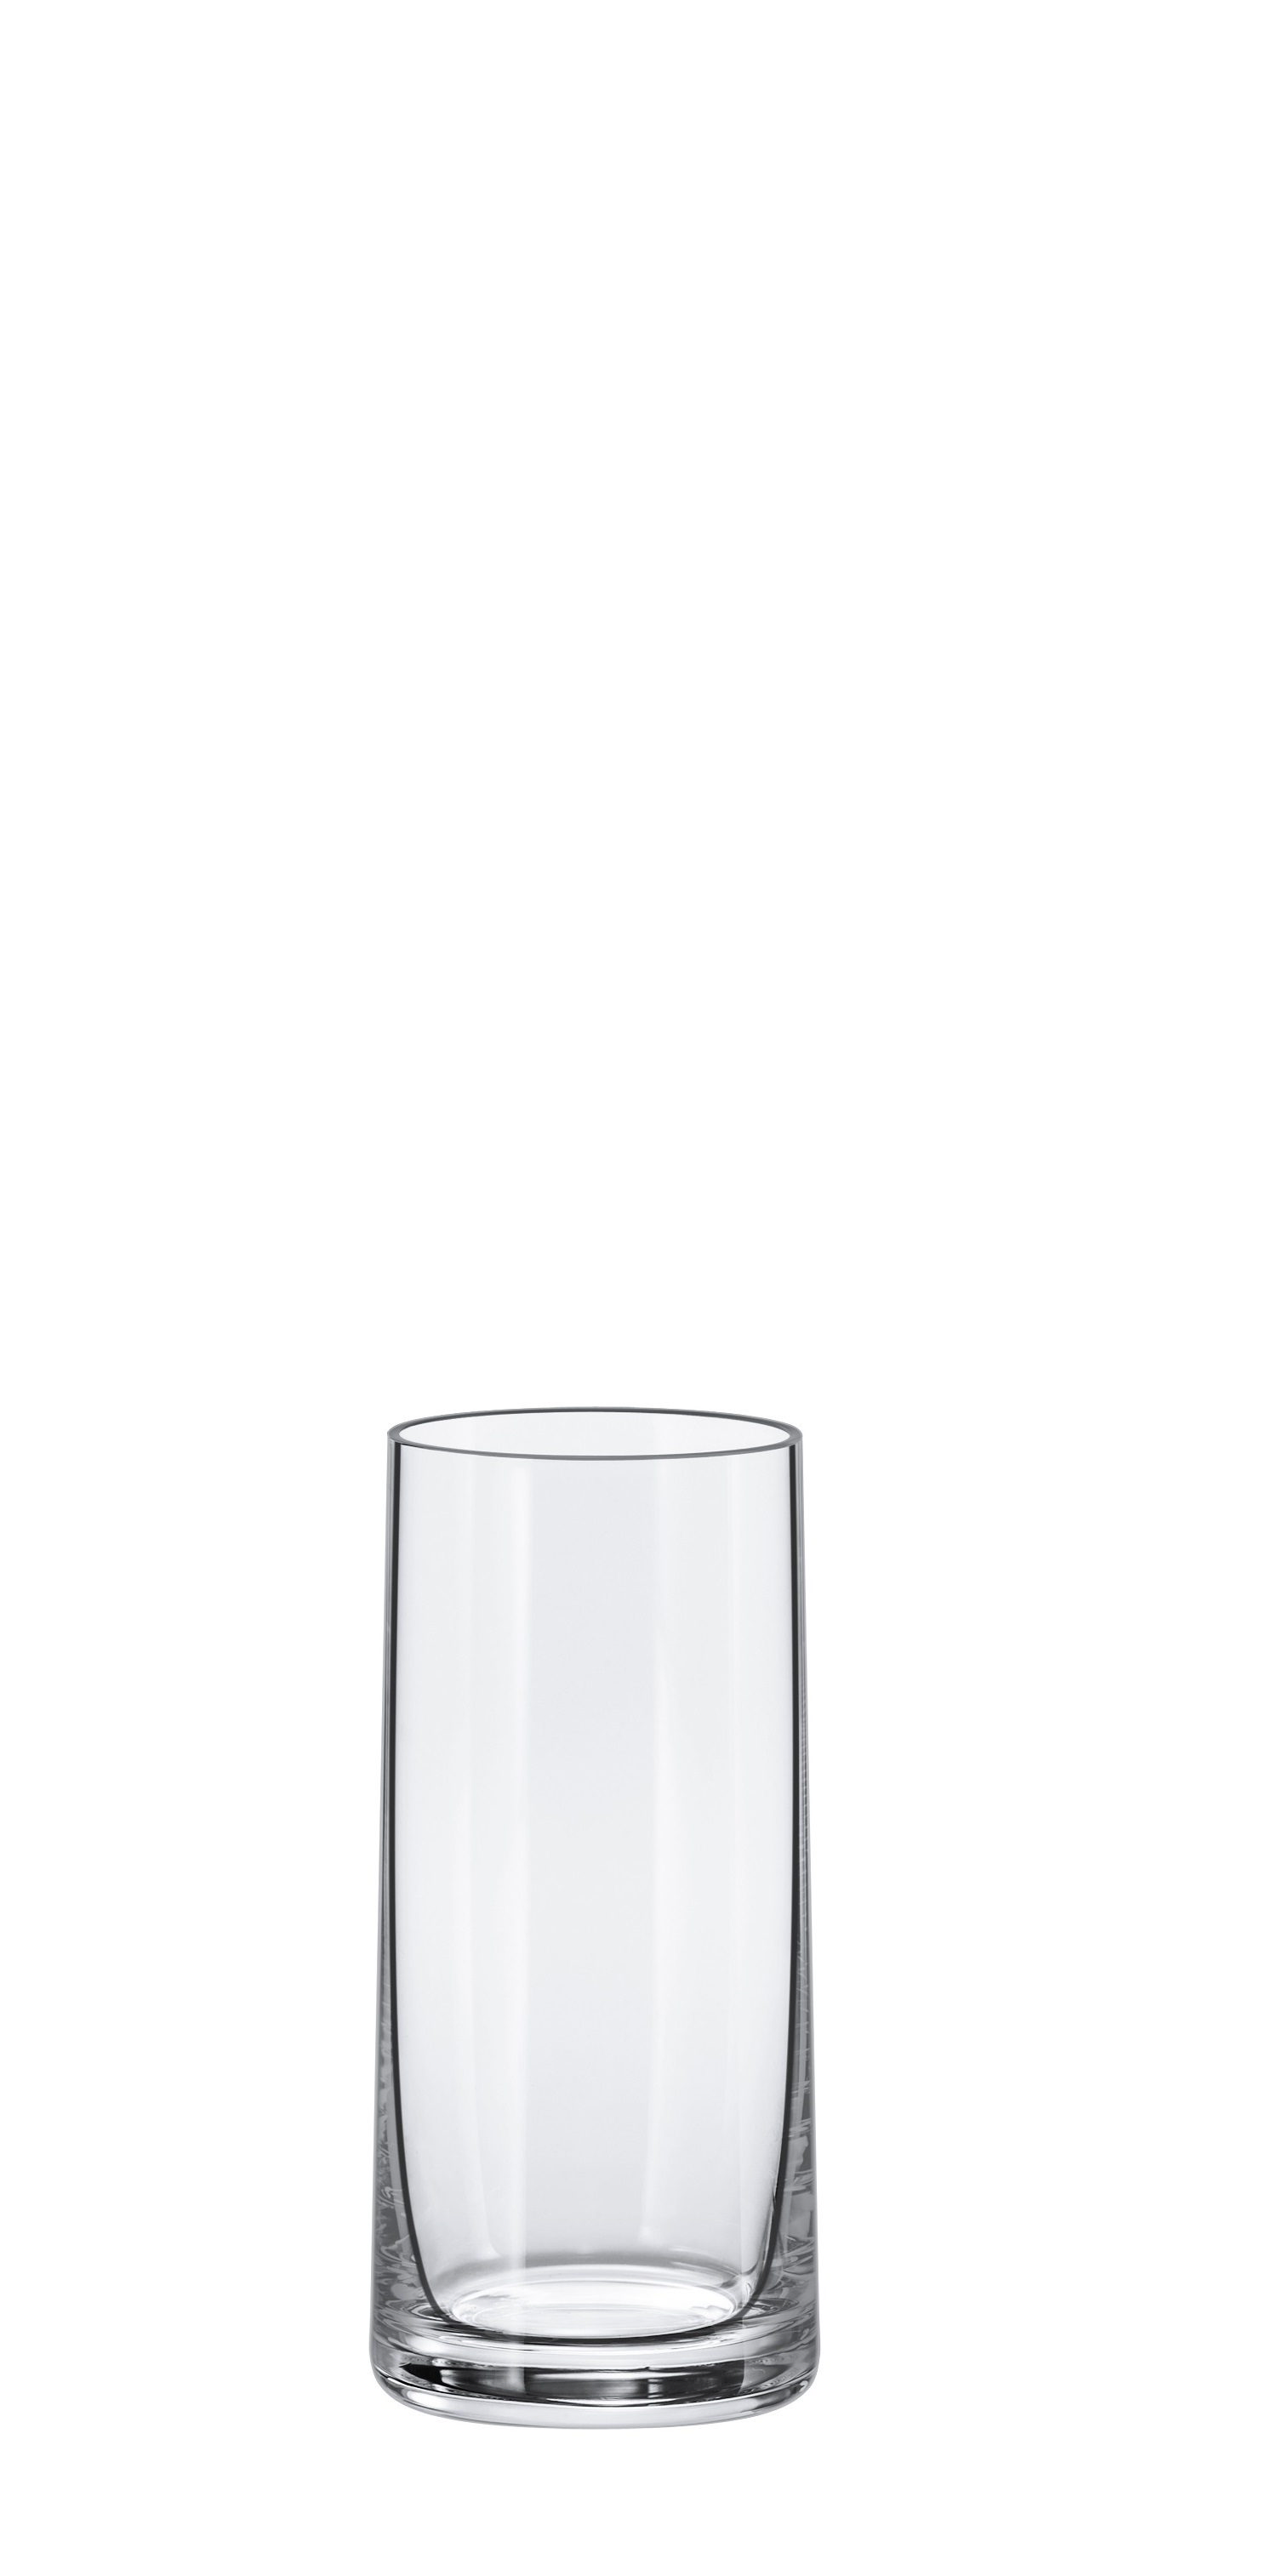 Shotglass MODE 90 ml